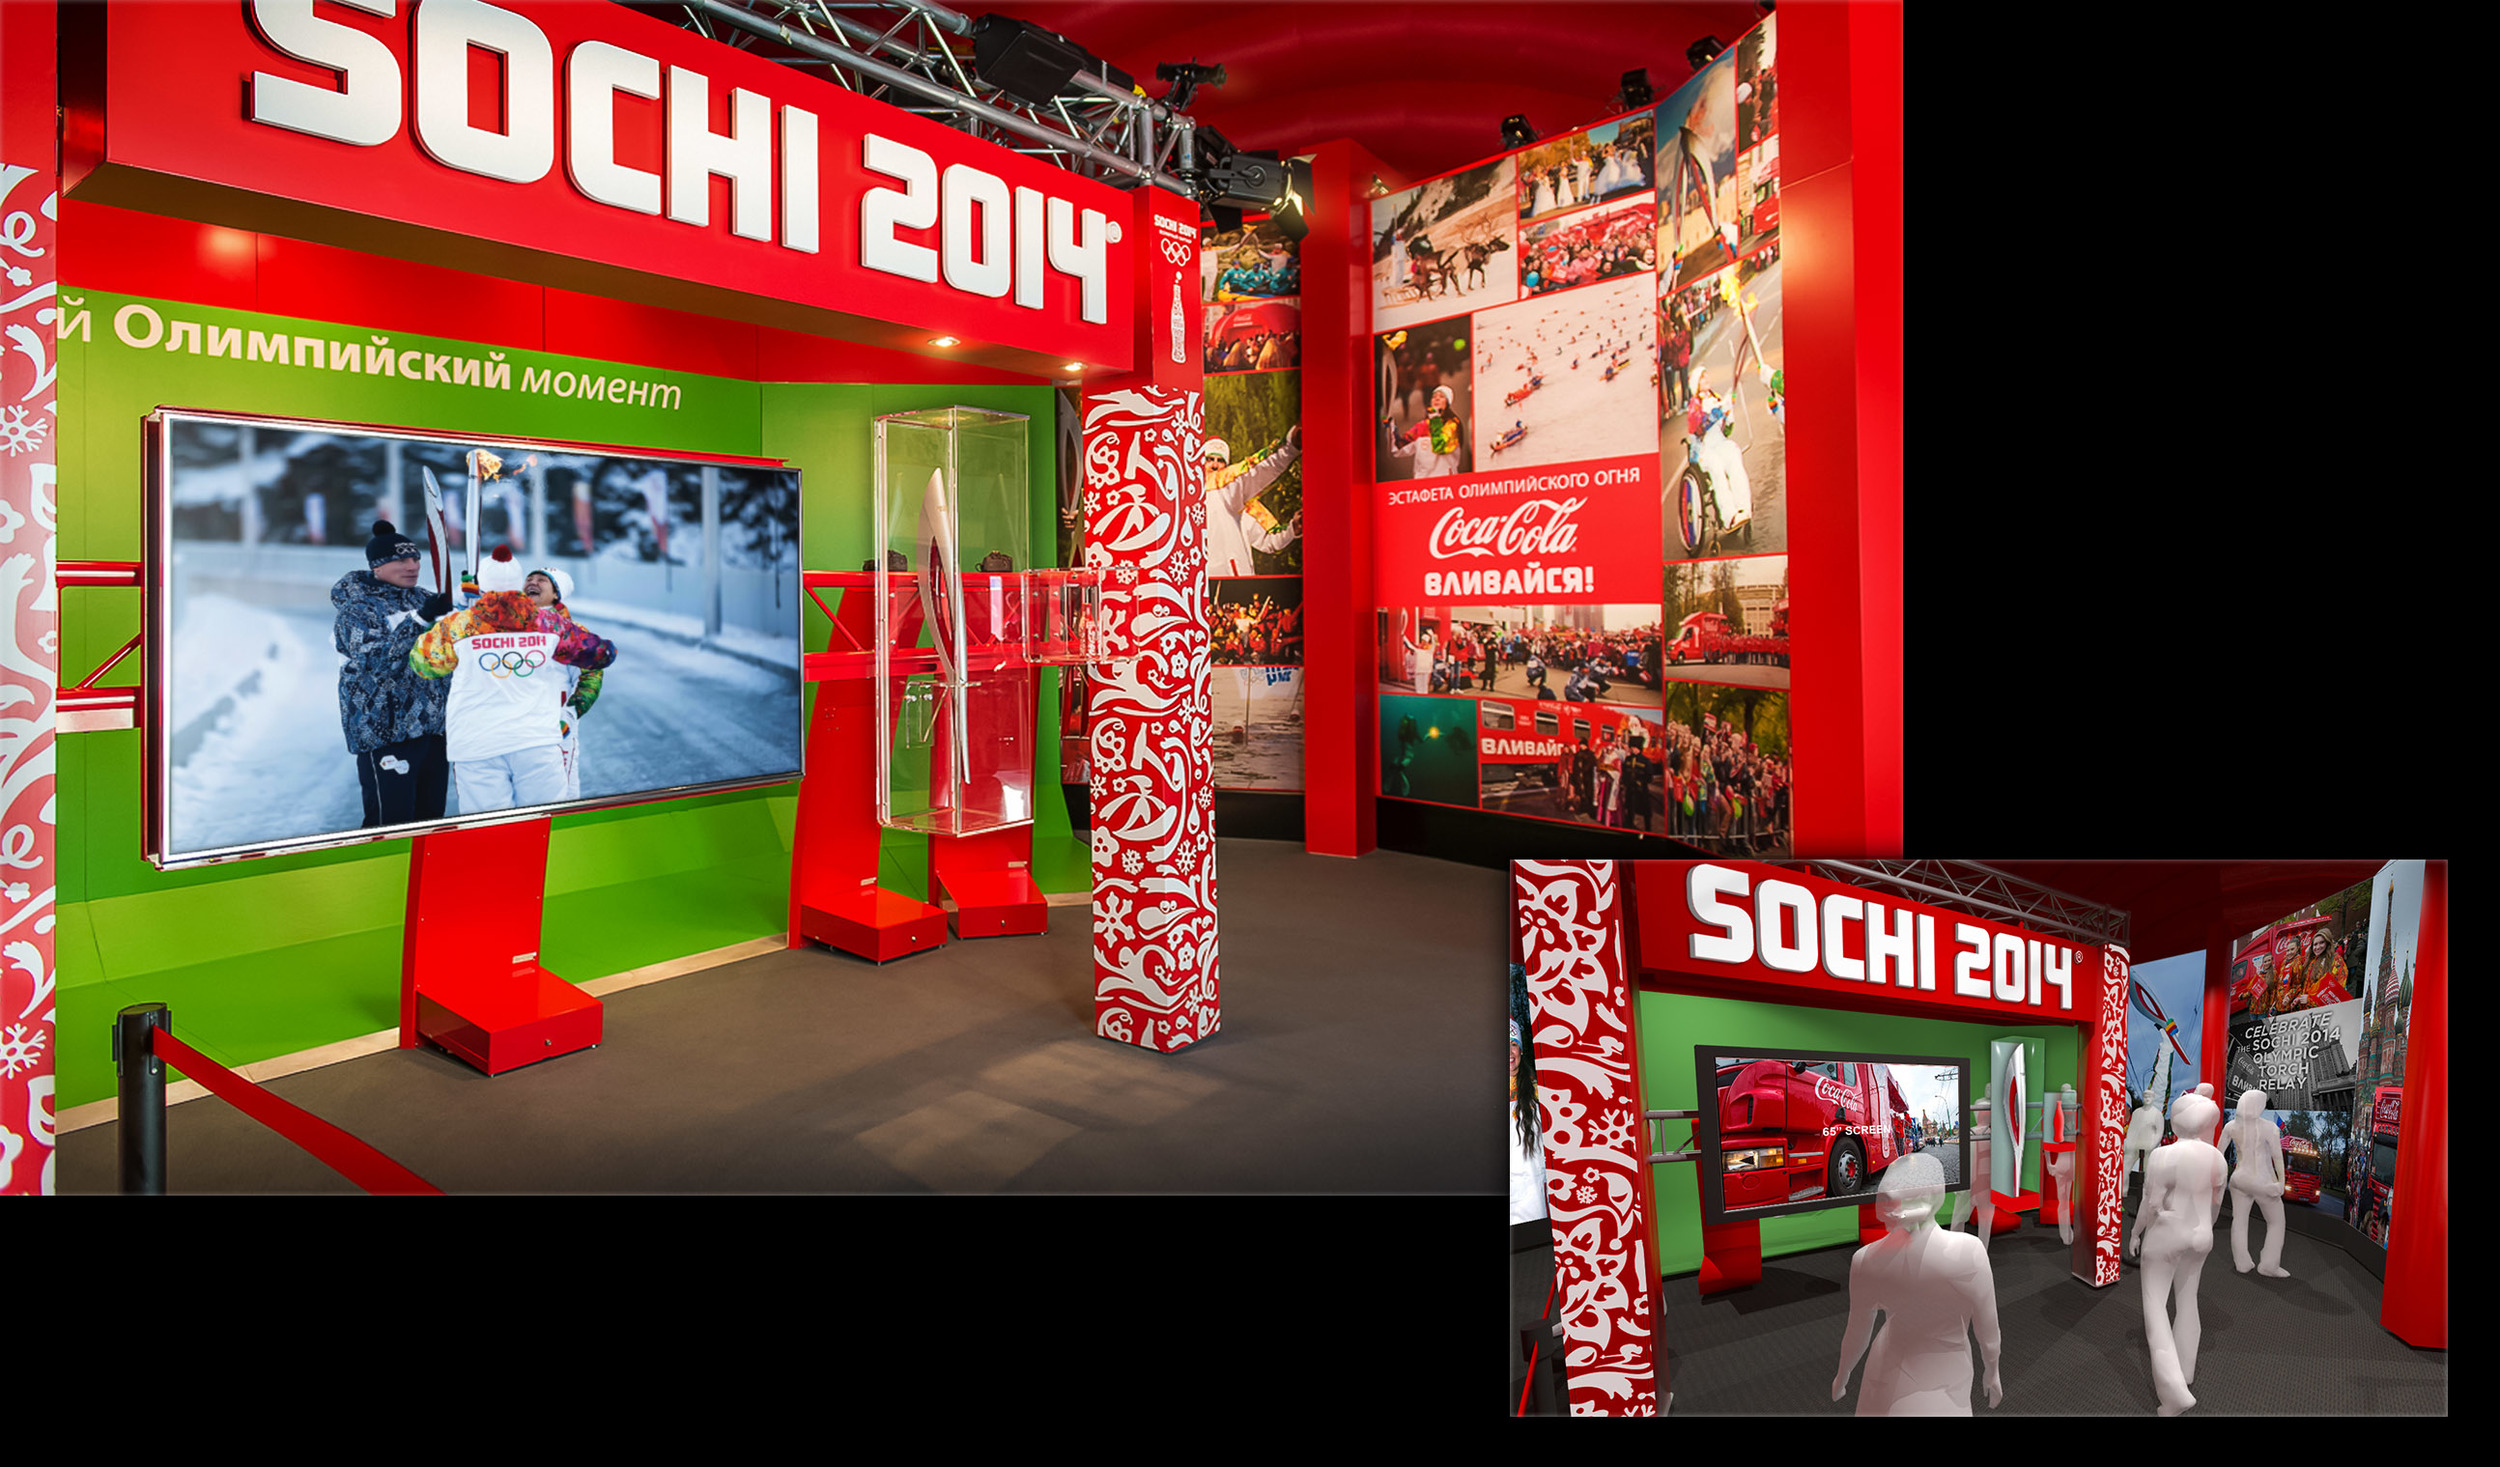 sochi_display-rendering+photo.jpg